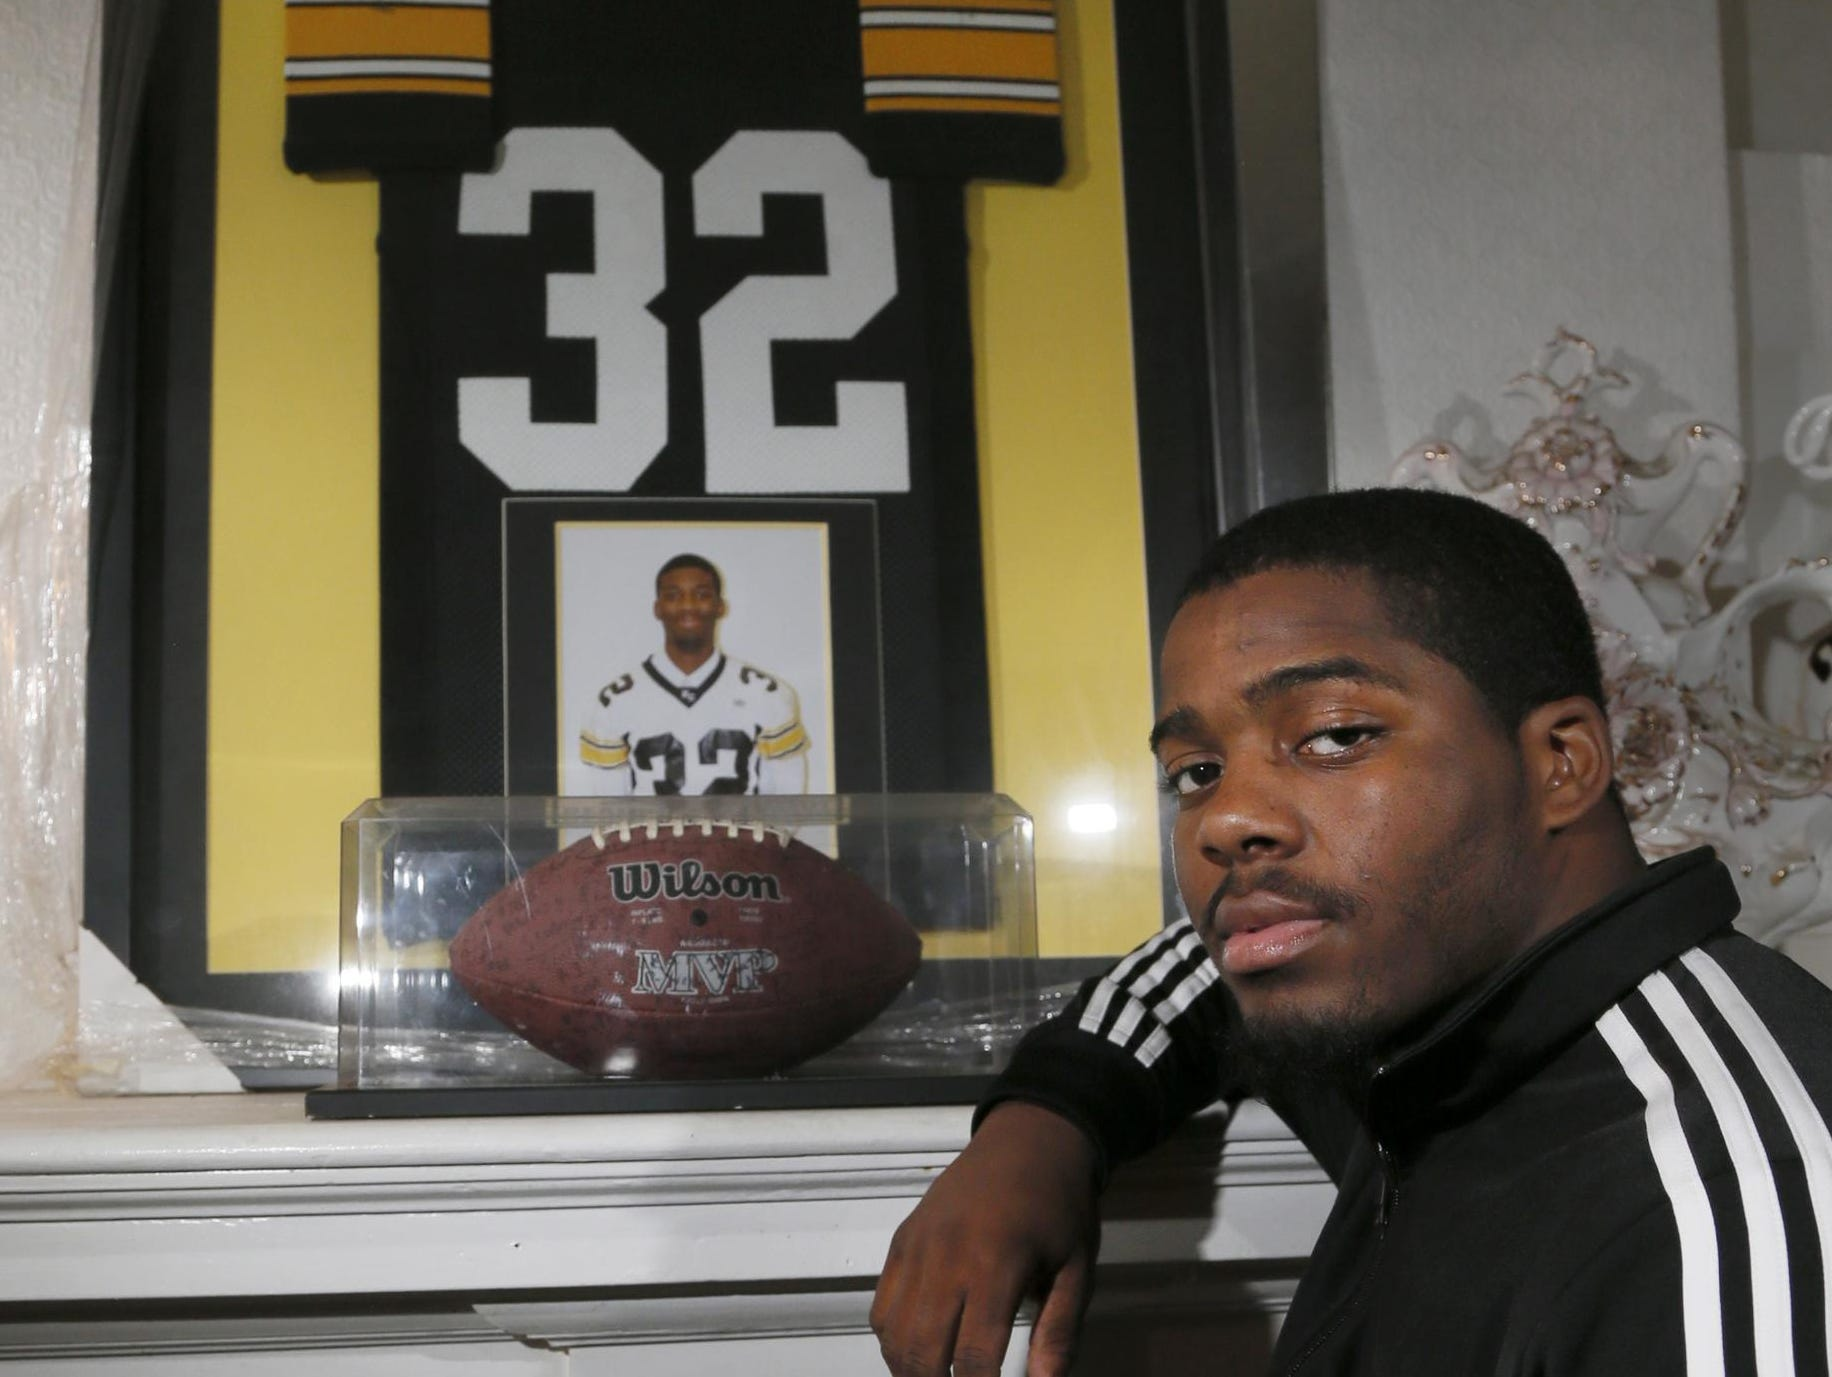 Detroit King senior running back Martell Pettaway poses with the framed jersey, photo and football from older brother, Devinne, who played for King and passed away in 2008. Pettaway wears the same No. 32.